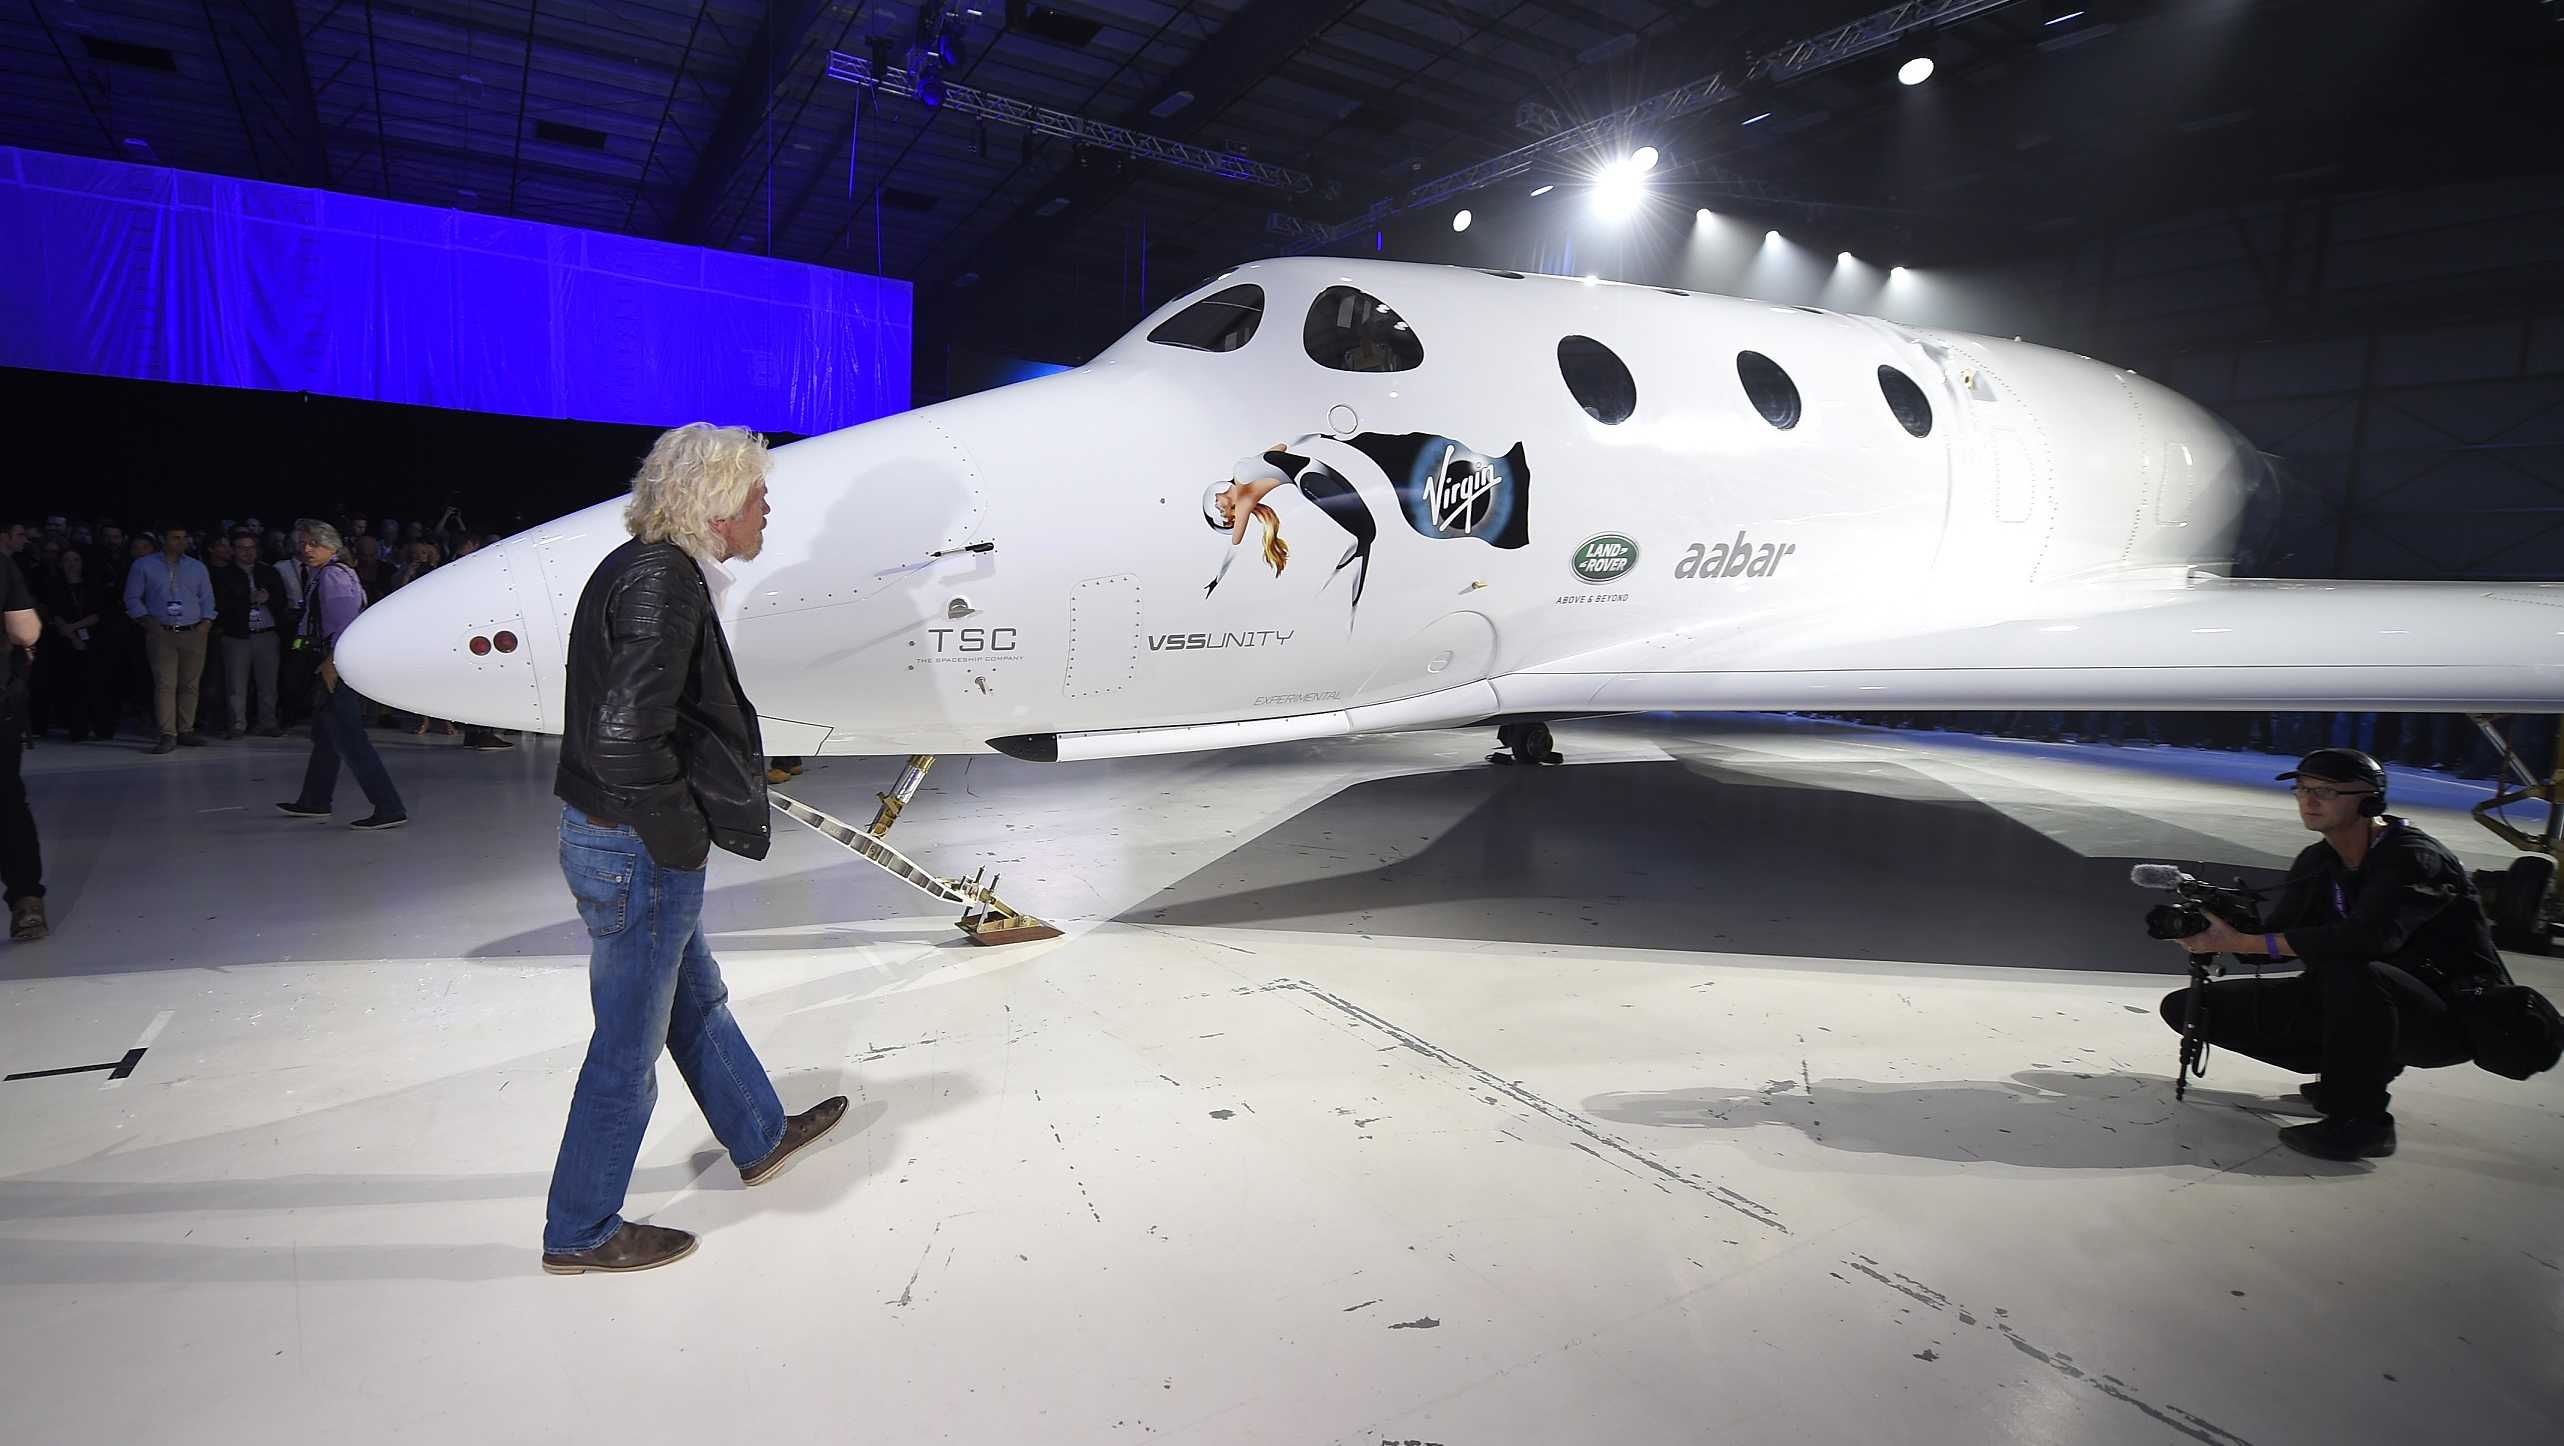 Sir Richard Branson walks in front of Virgin Galactic's space tourism rocket after it was unveiled in February 2016, in Mojave, Calif.